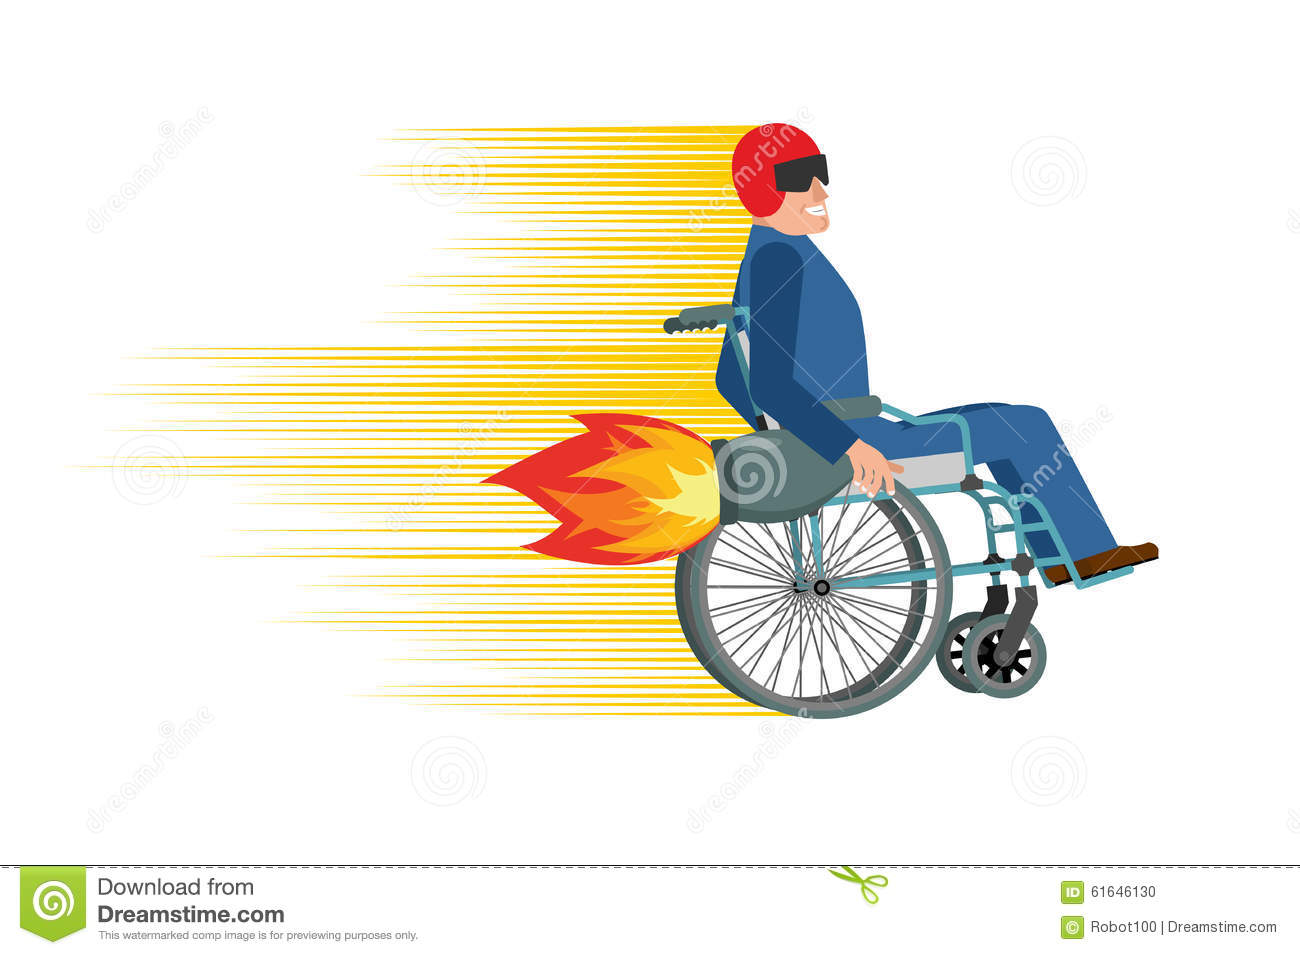 race car office chair la z boy delano big and tall executive chestnut wheelchair with turbo engine. disabled fast rides. man in stock vector - image: 61646130